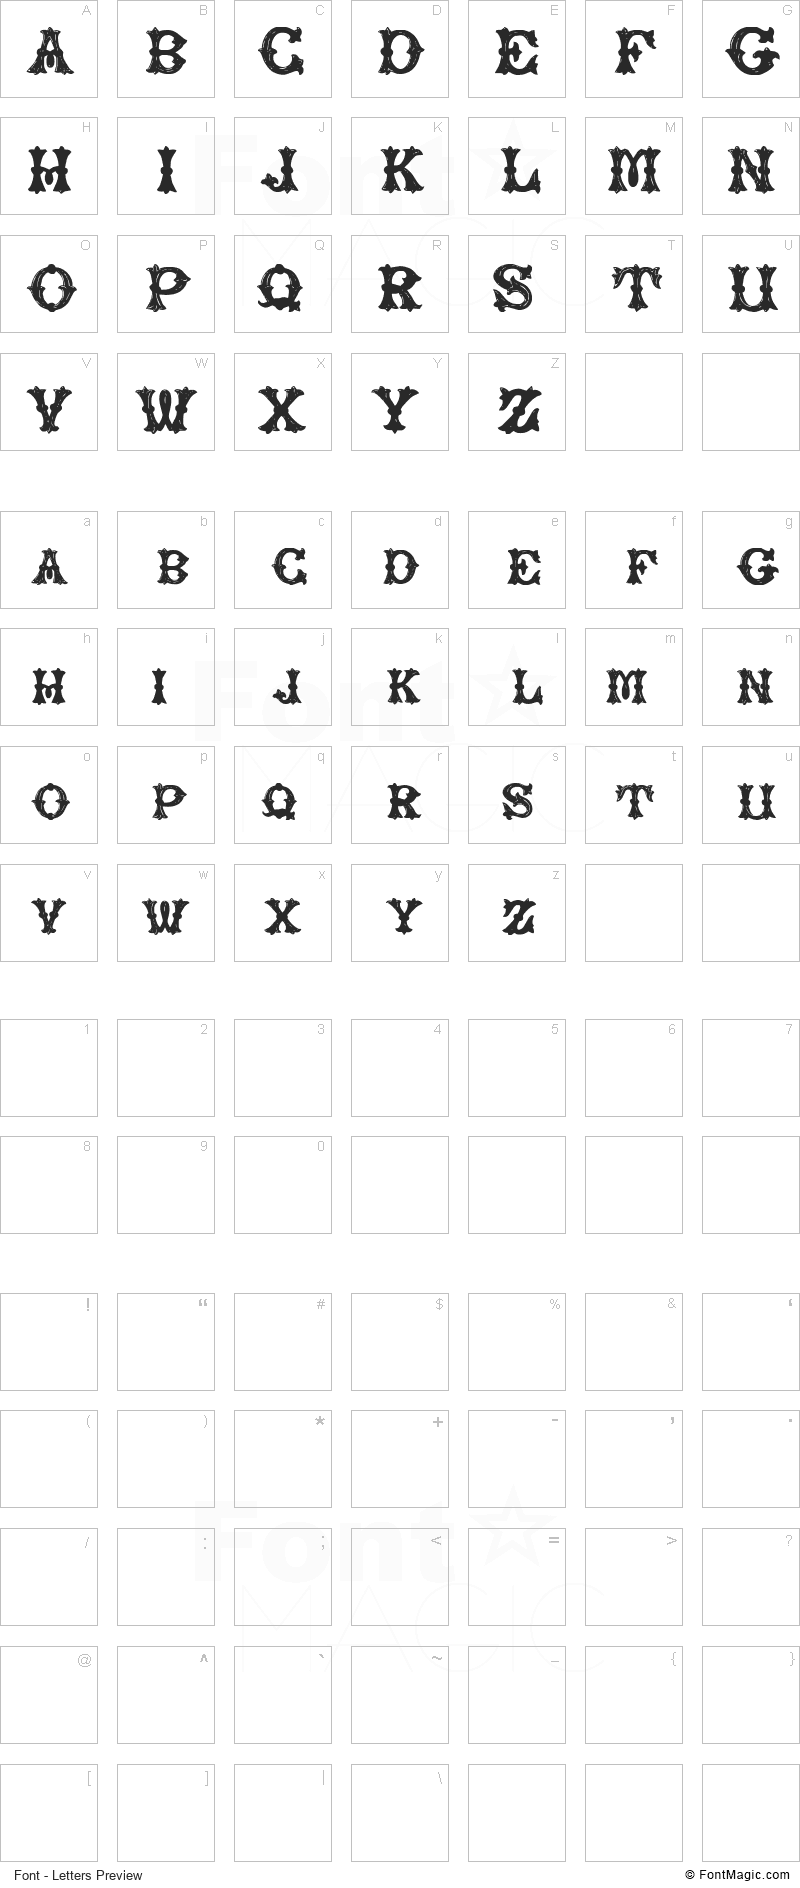 Rough Tuscan Font - All Latters Preview Chart